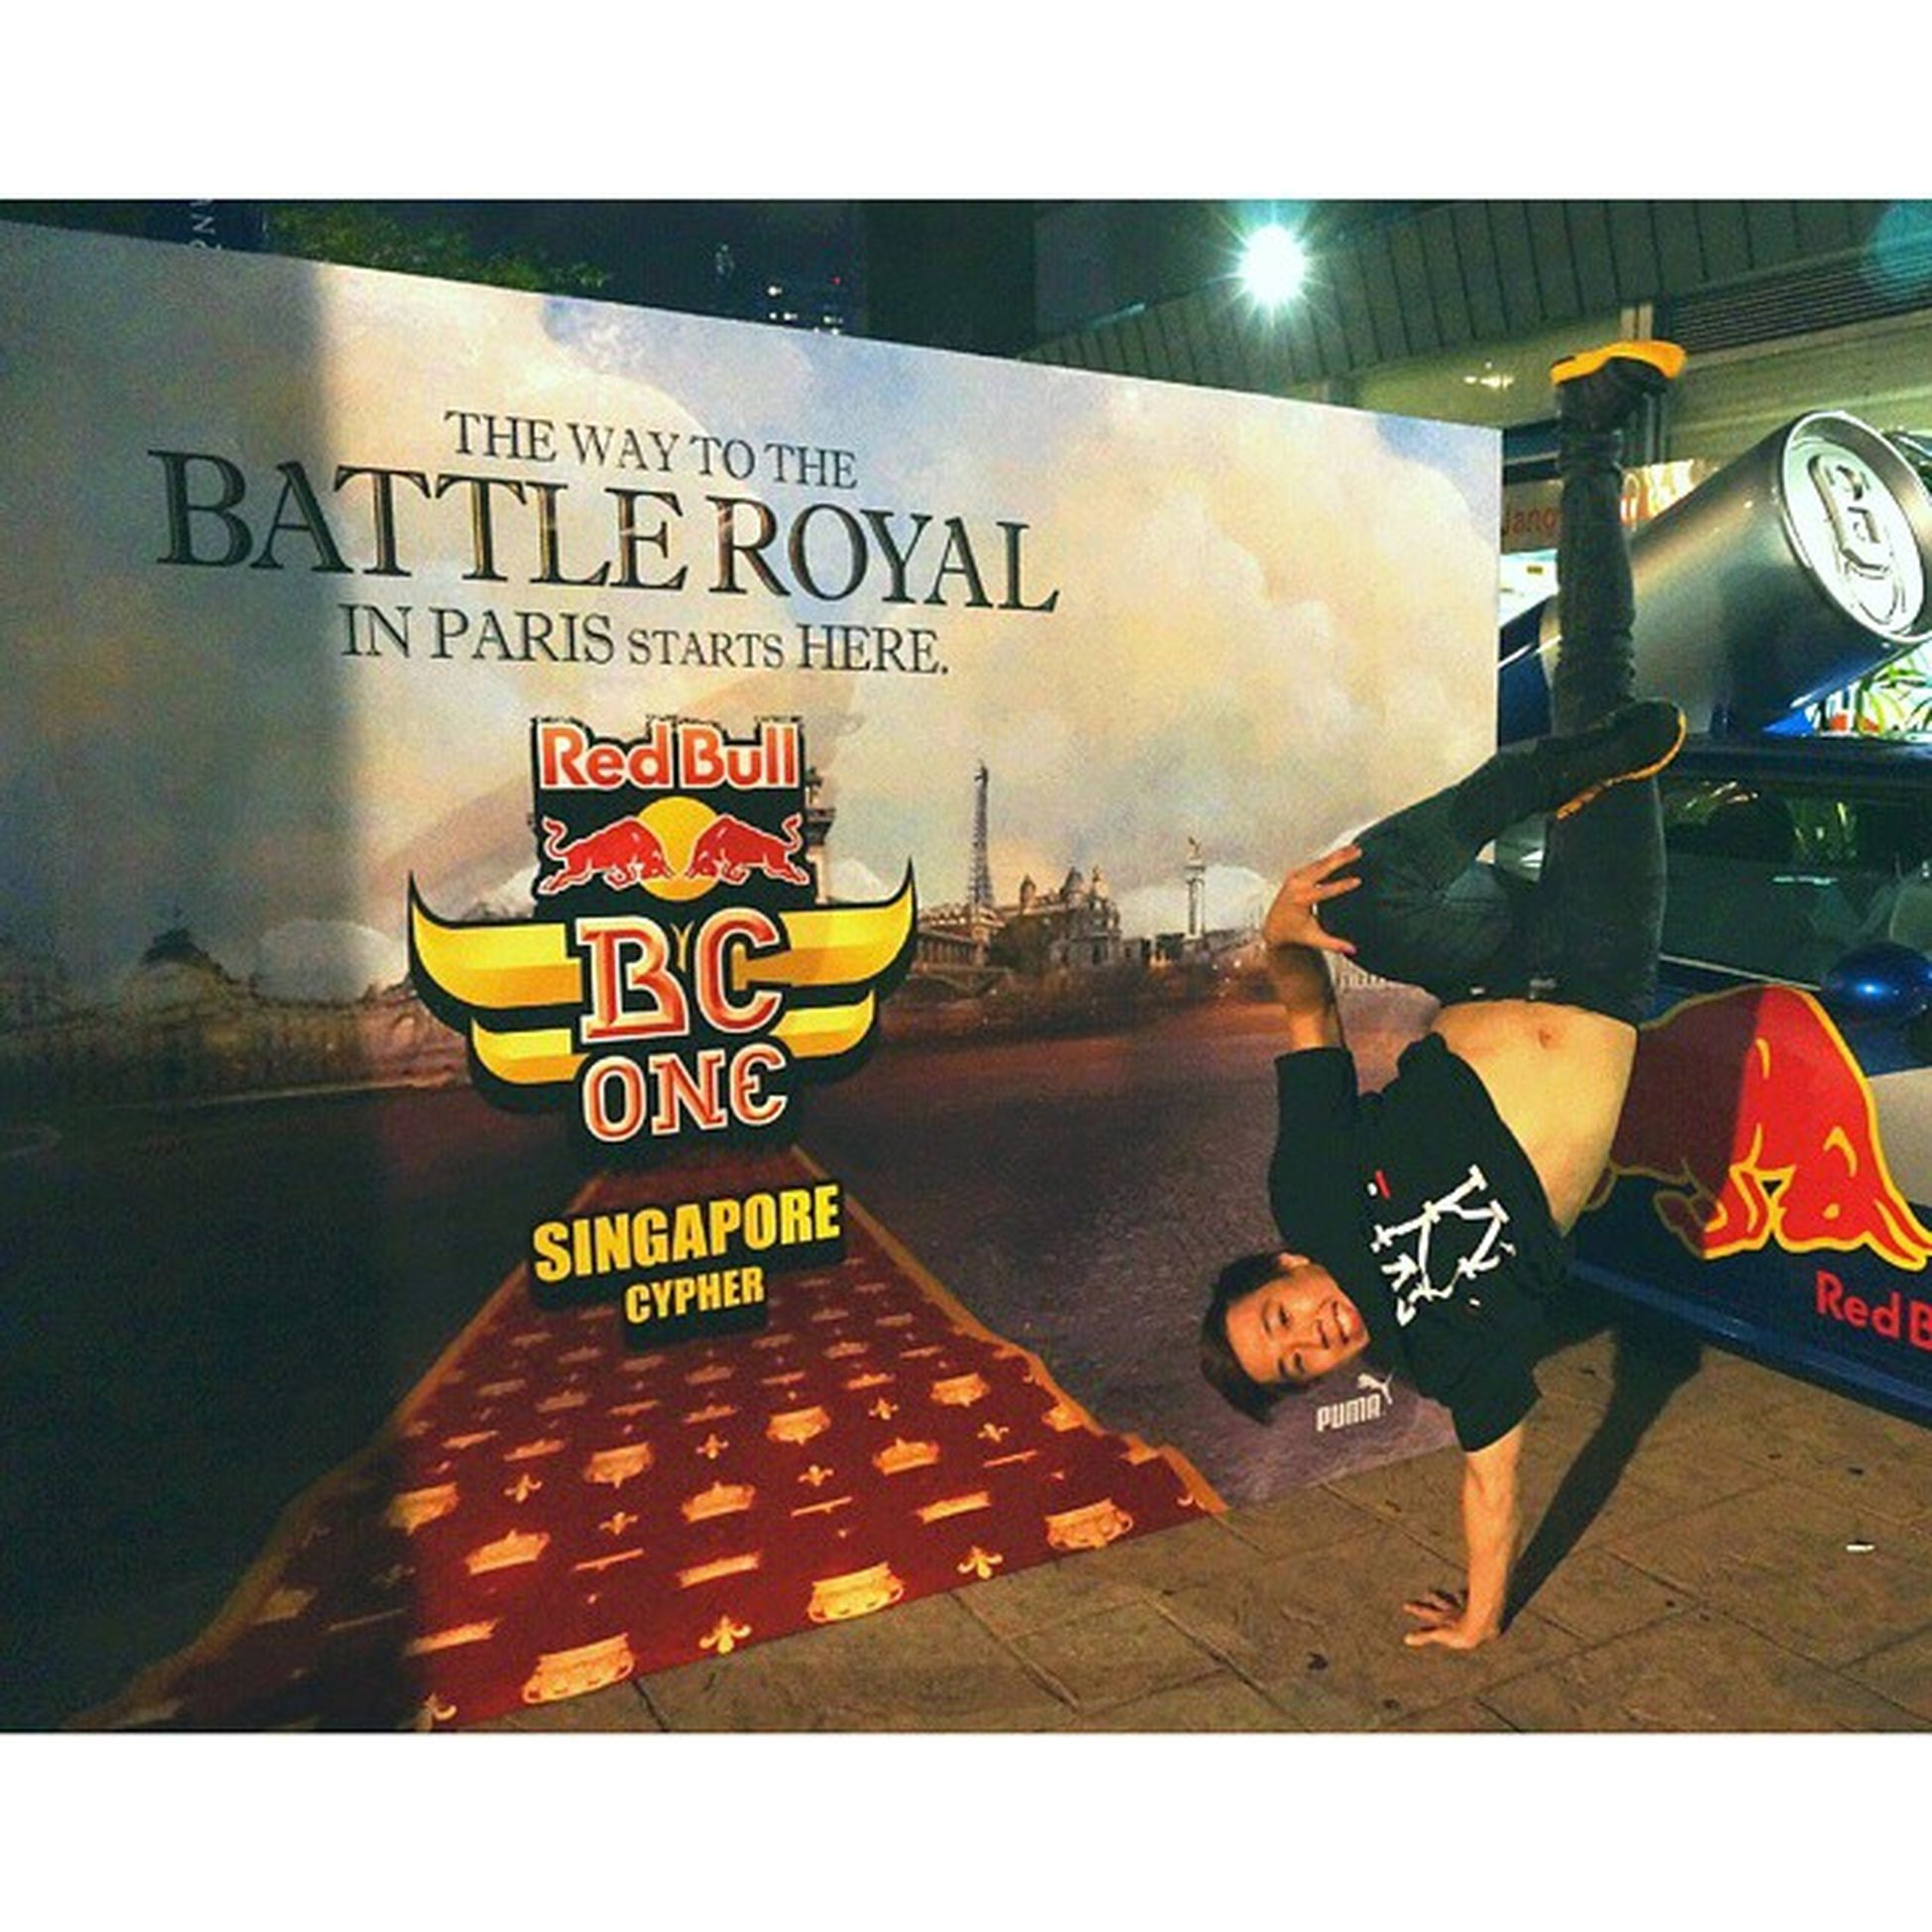 🔙 To the previous Red Bull BC One! I didn't compete that year but I will be competing in this years Battle of the Year SG this Saturday! Nervous but at the same time hyped and anticipating a good time! Throwback BBOY Dance Airfreeze Darylfreezeadventures RedBull Bcone Smilewhenyoufreeze Calisthenics Inversion Handstand  Strength Strengthproject Strengthtraining Igsg Sgig Instadaily IGDaily Squareinstapic 비보이 데일리 맞팔 Mightynomads Breakinus Picoftheday